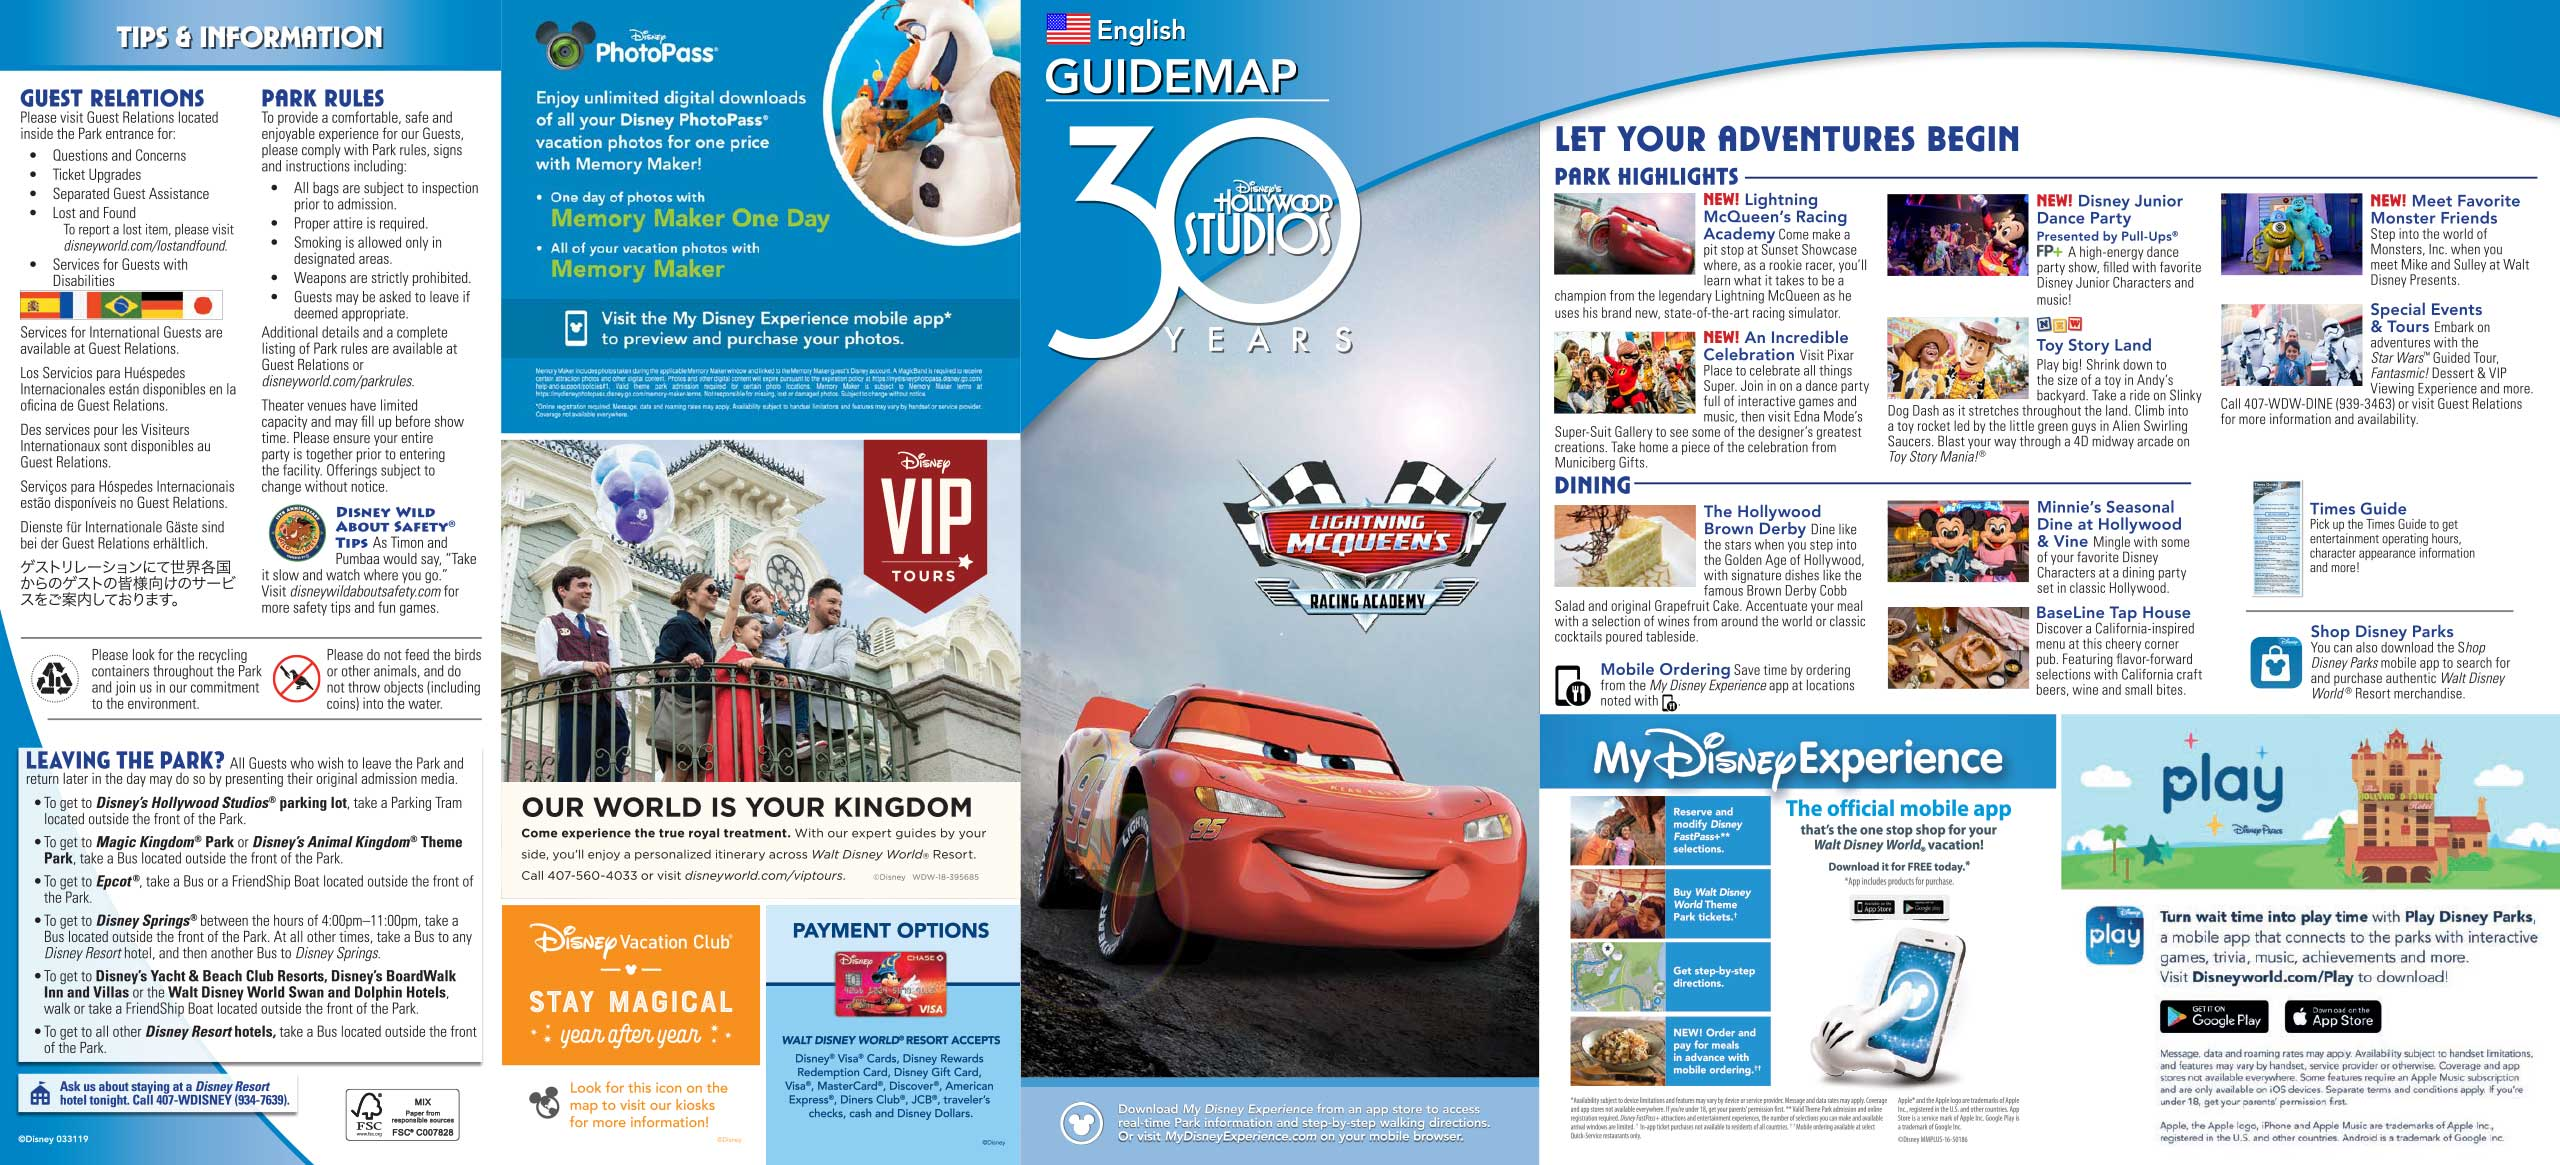 30th Anniversary Guide Map for Disney's Hollywood Studios